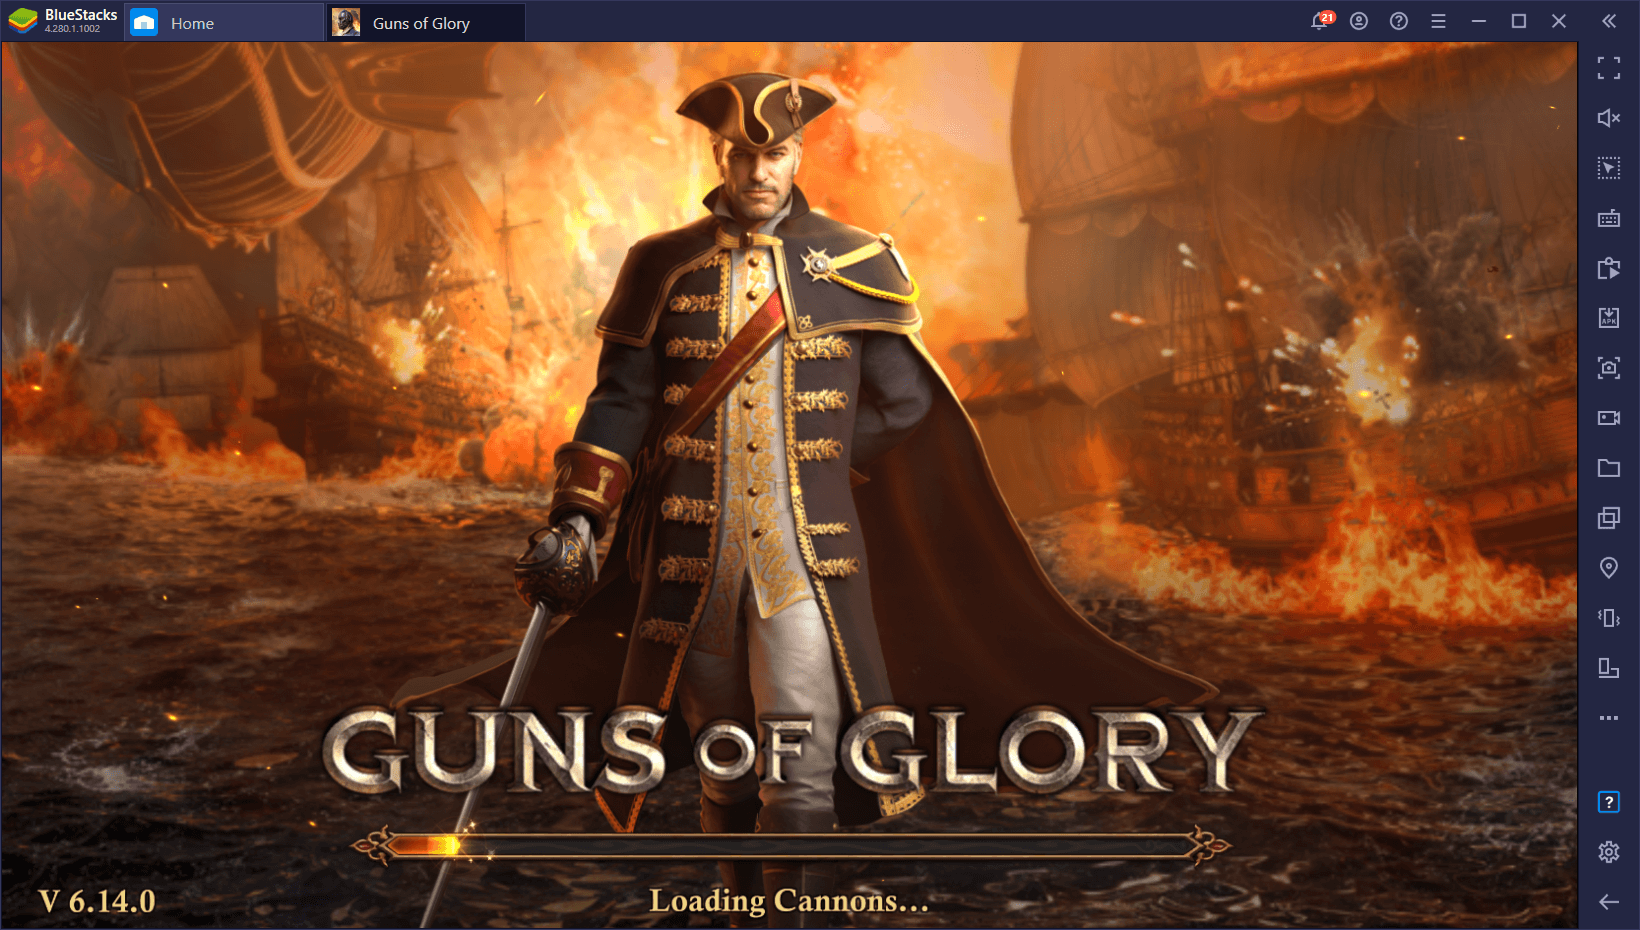 How to Install and Play Guns of Glory on PC With BlueStacks